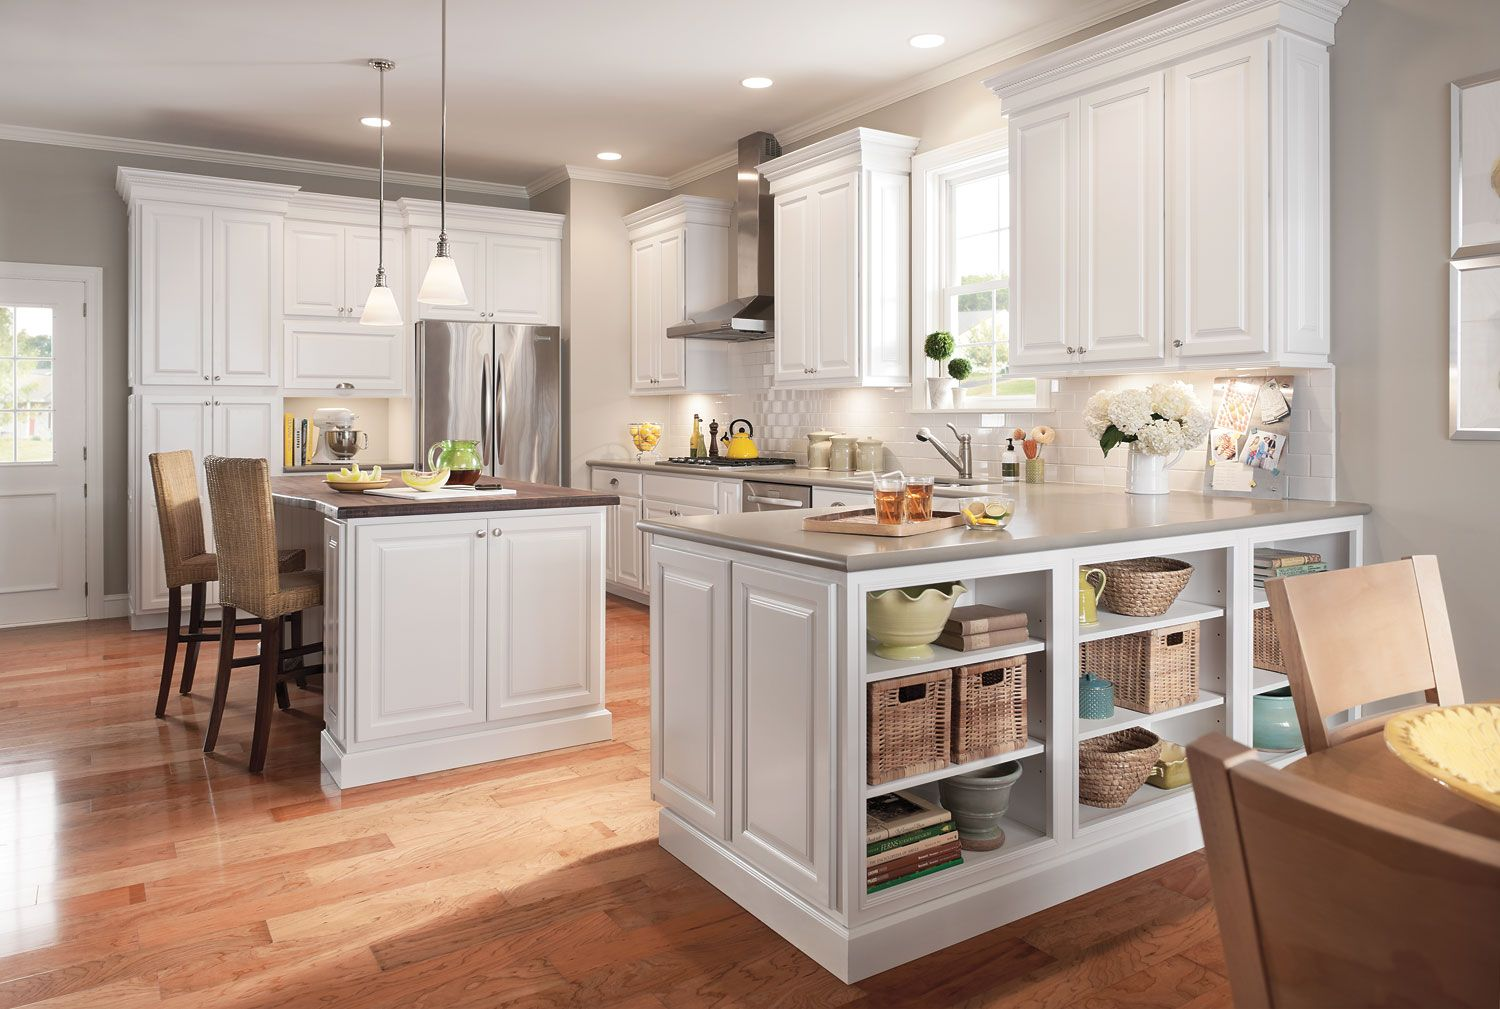 Kitchen Featuring Open Storage Cabinets From Timberlake